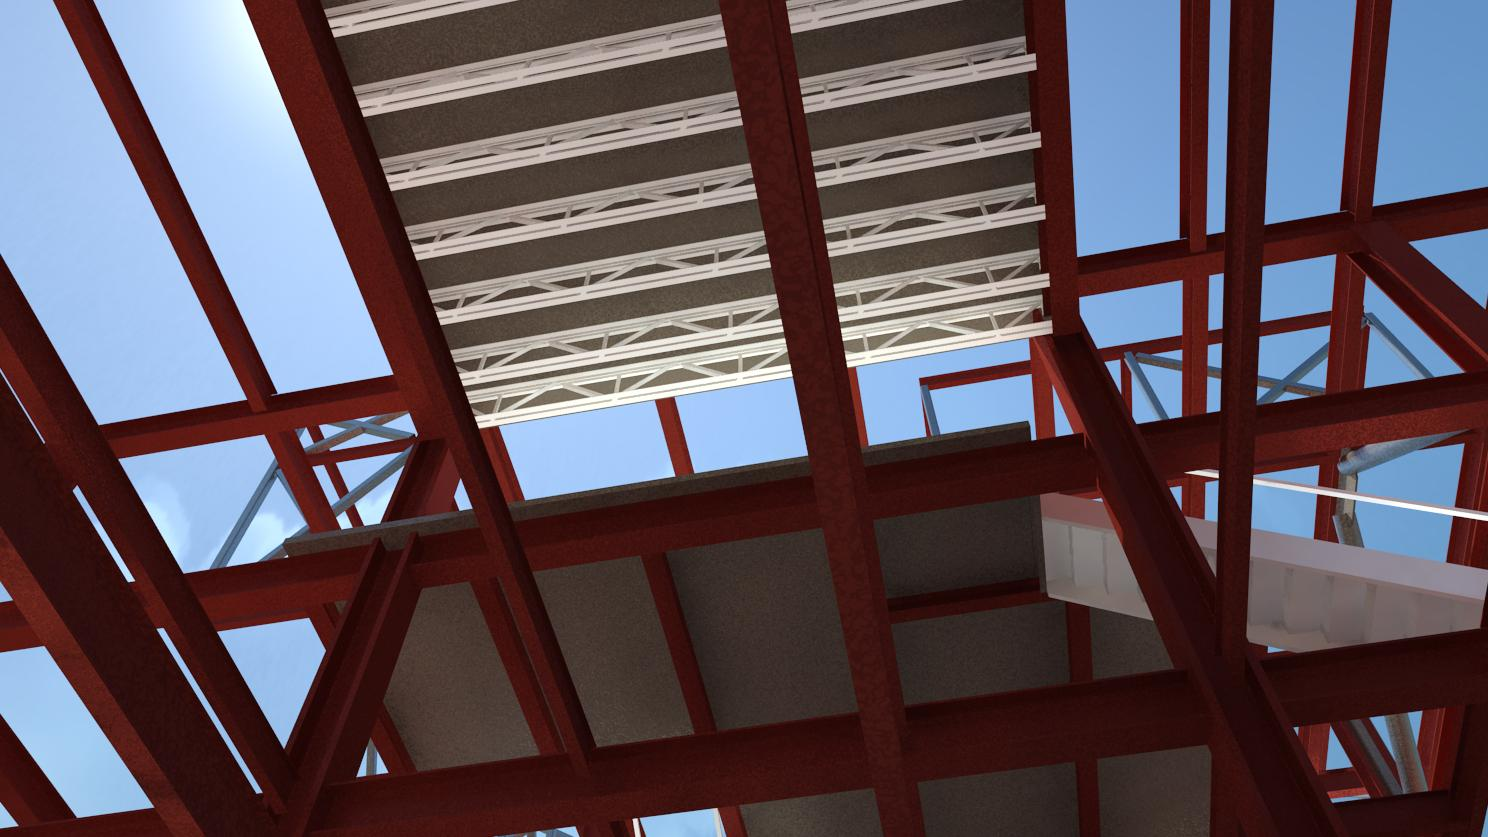 Image - Selma Ave Hotel, Hollywood - Perspective - Open Steel Framing 6th Floor to Pool